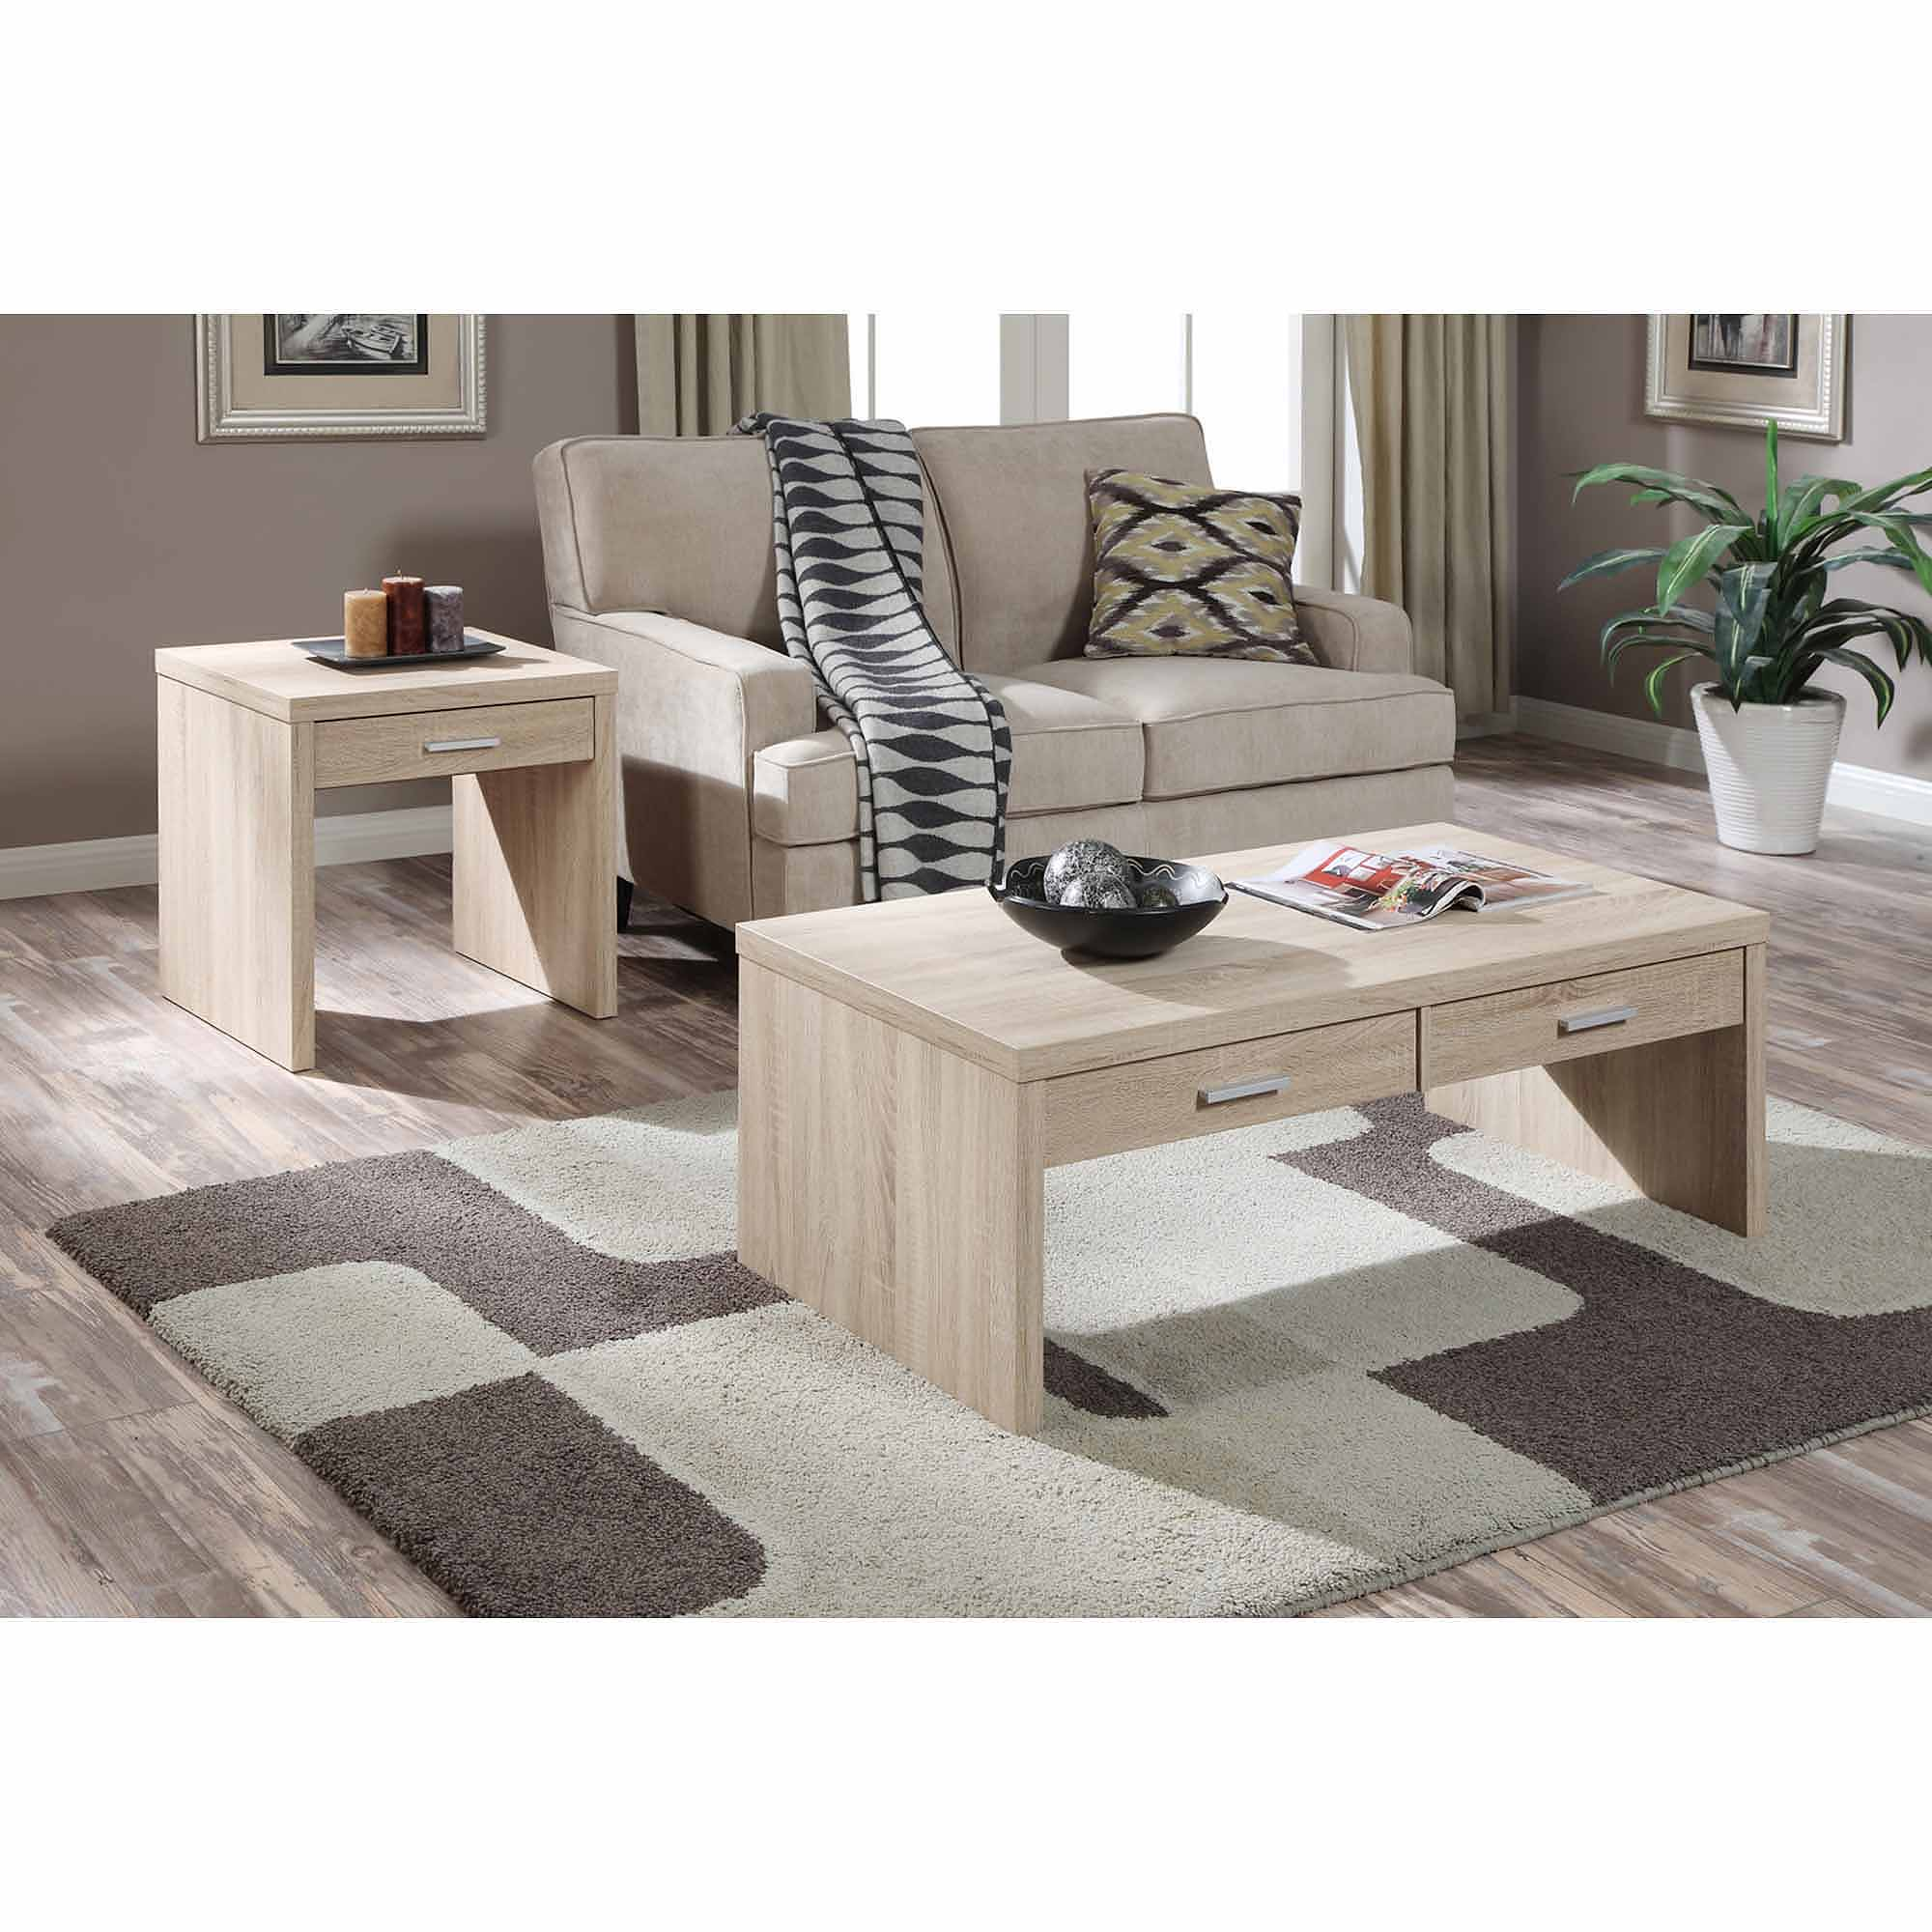 Convenience Concepts Key West Coffee Table Weathered White